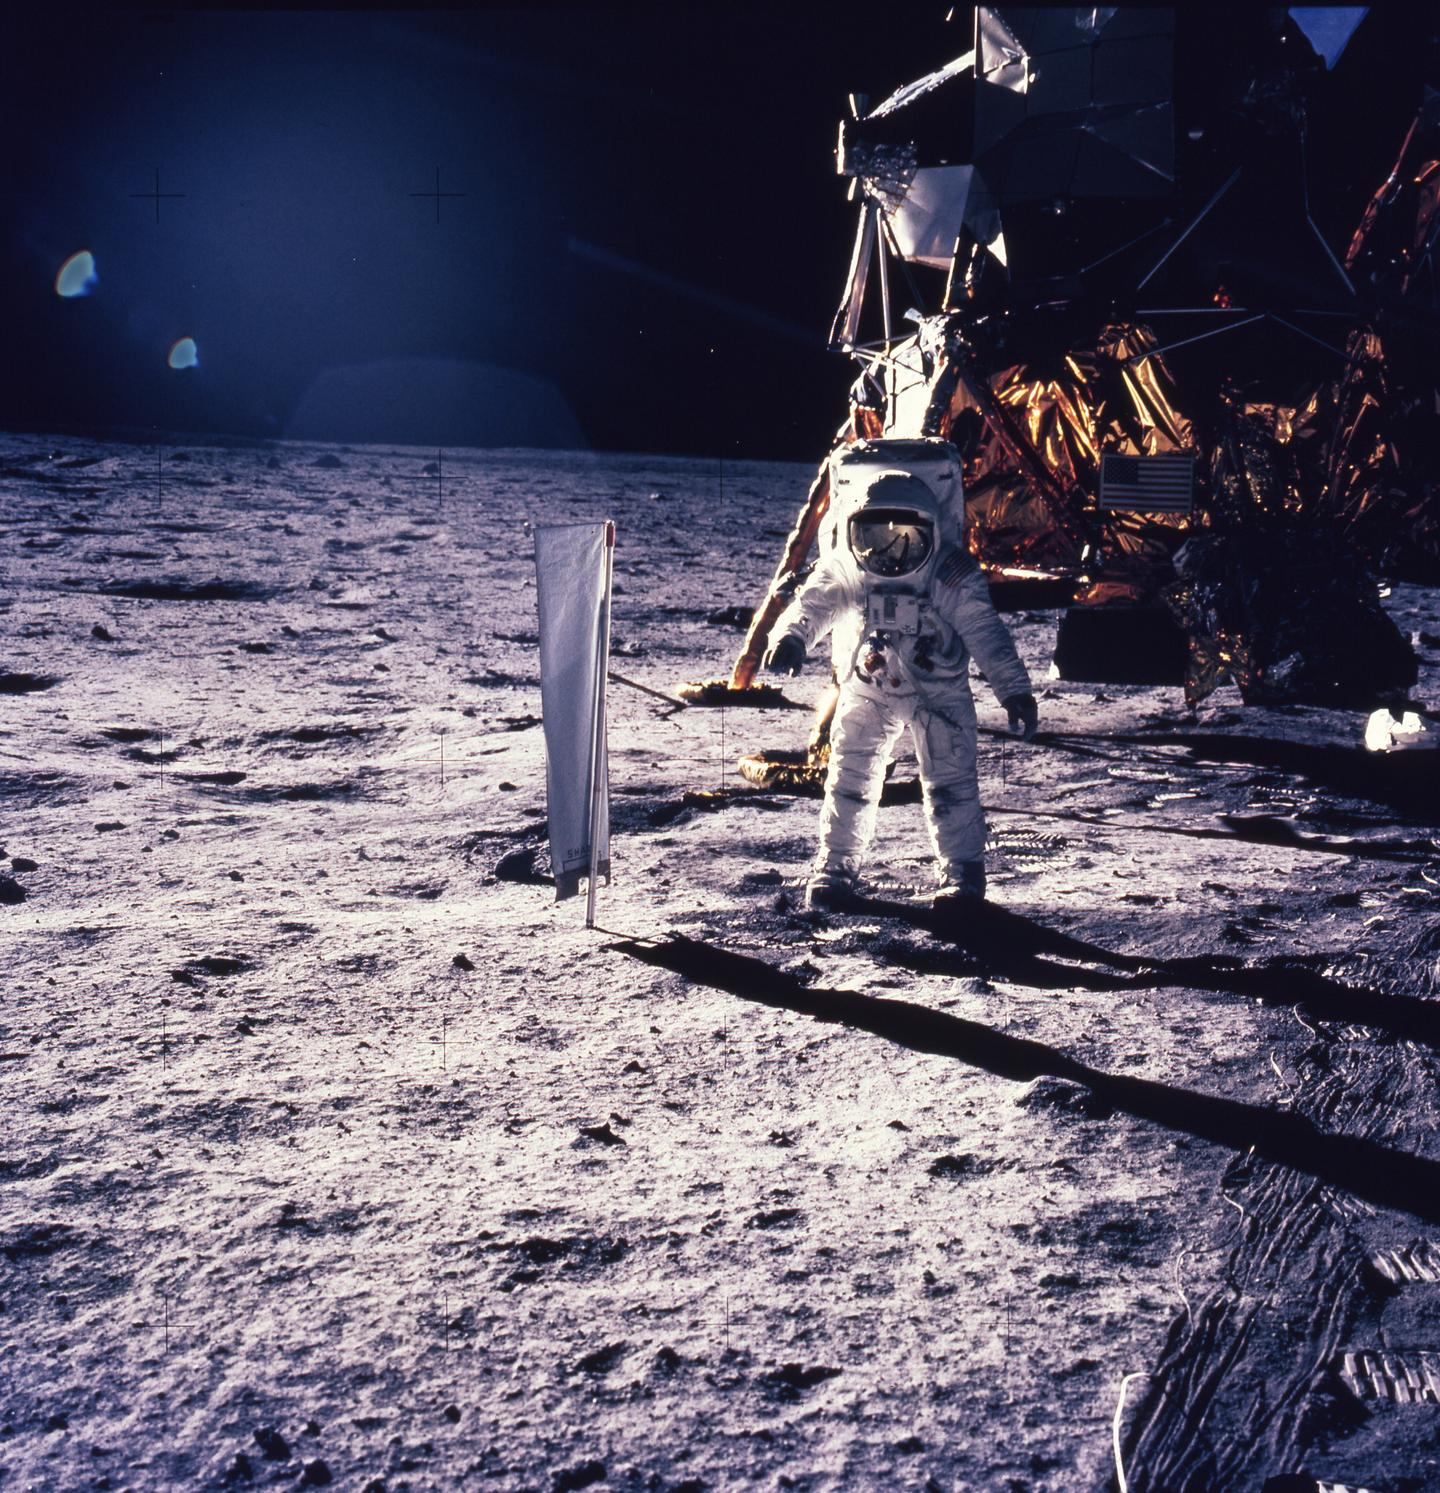 What Did Other Astronauts Say as They Took Their First Steps on the Moon?